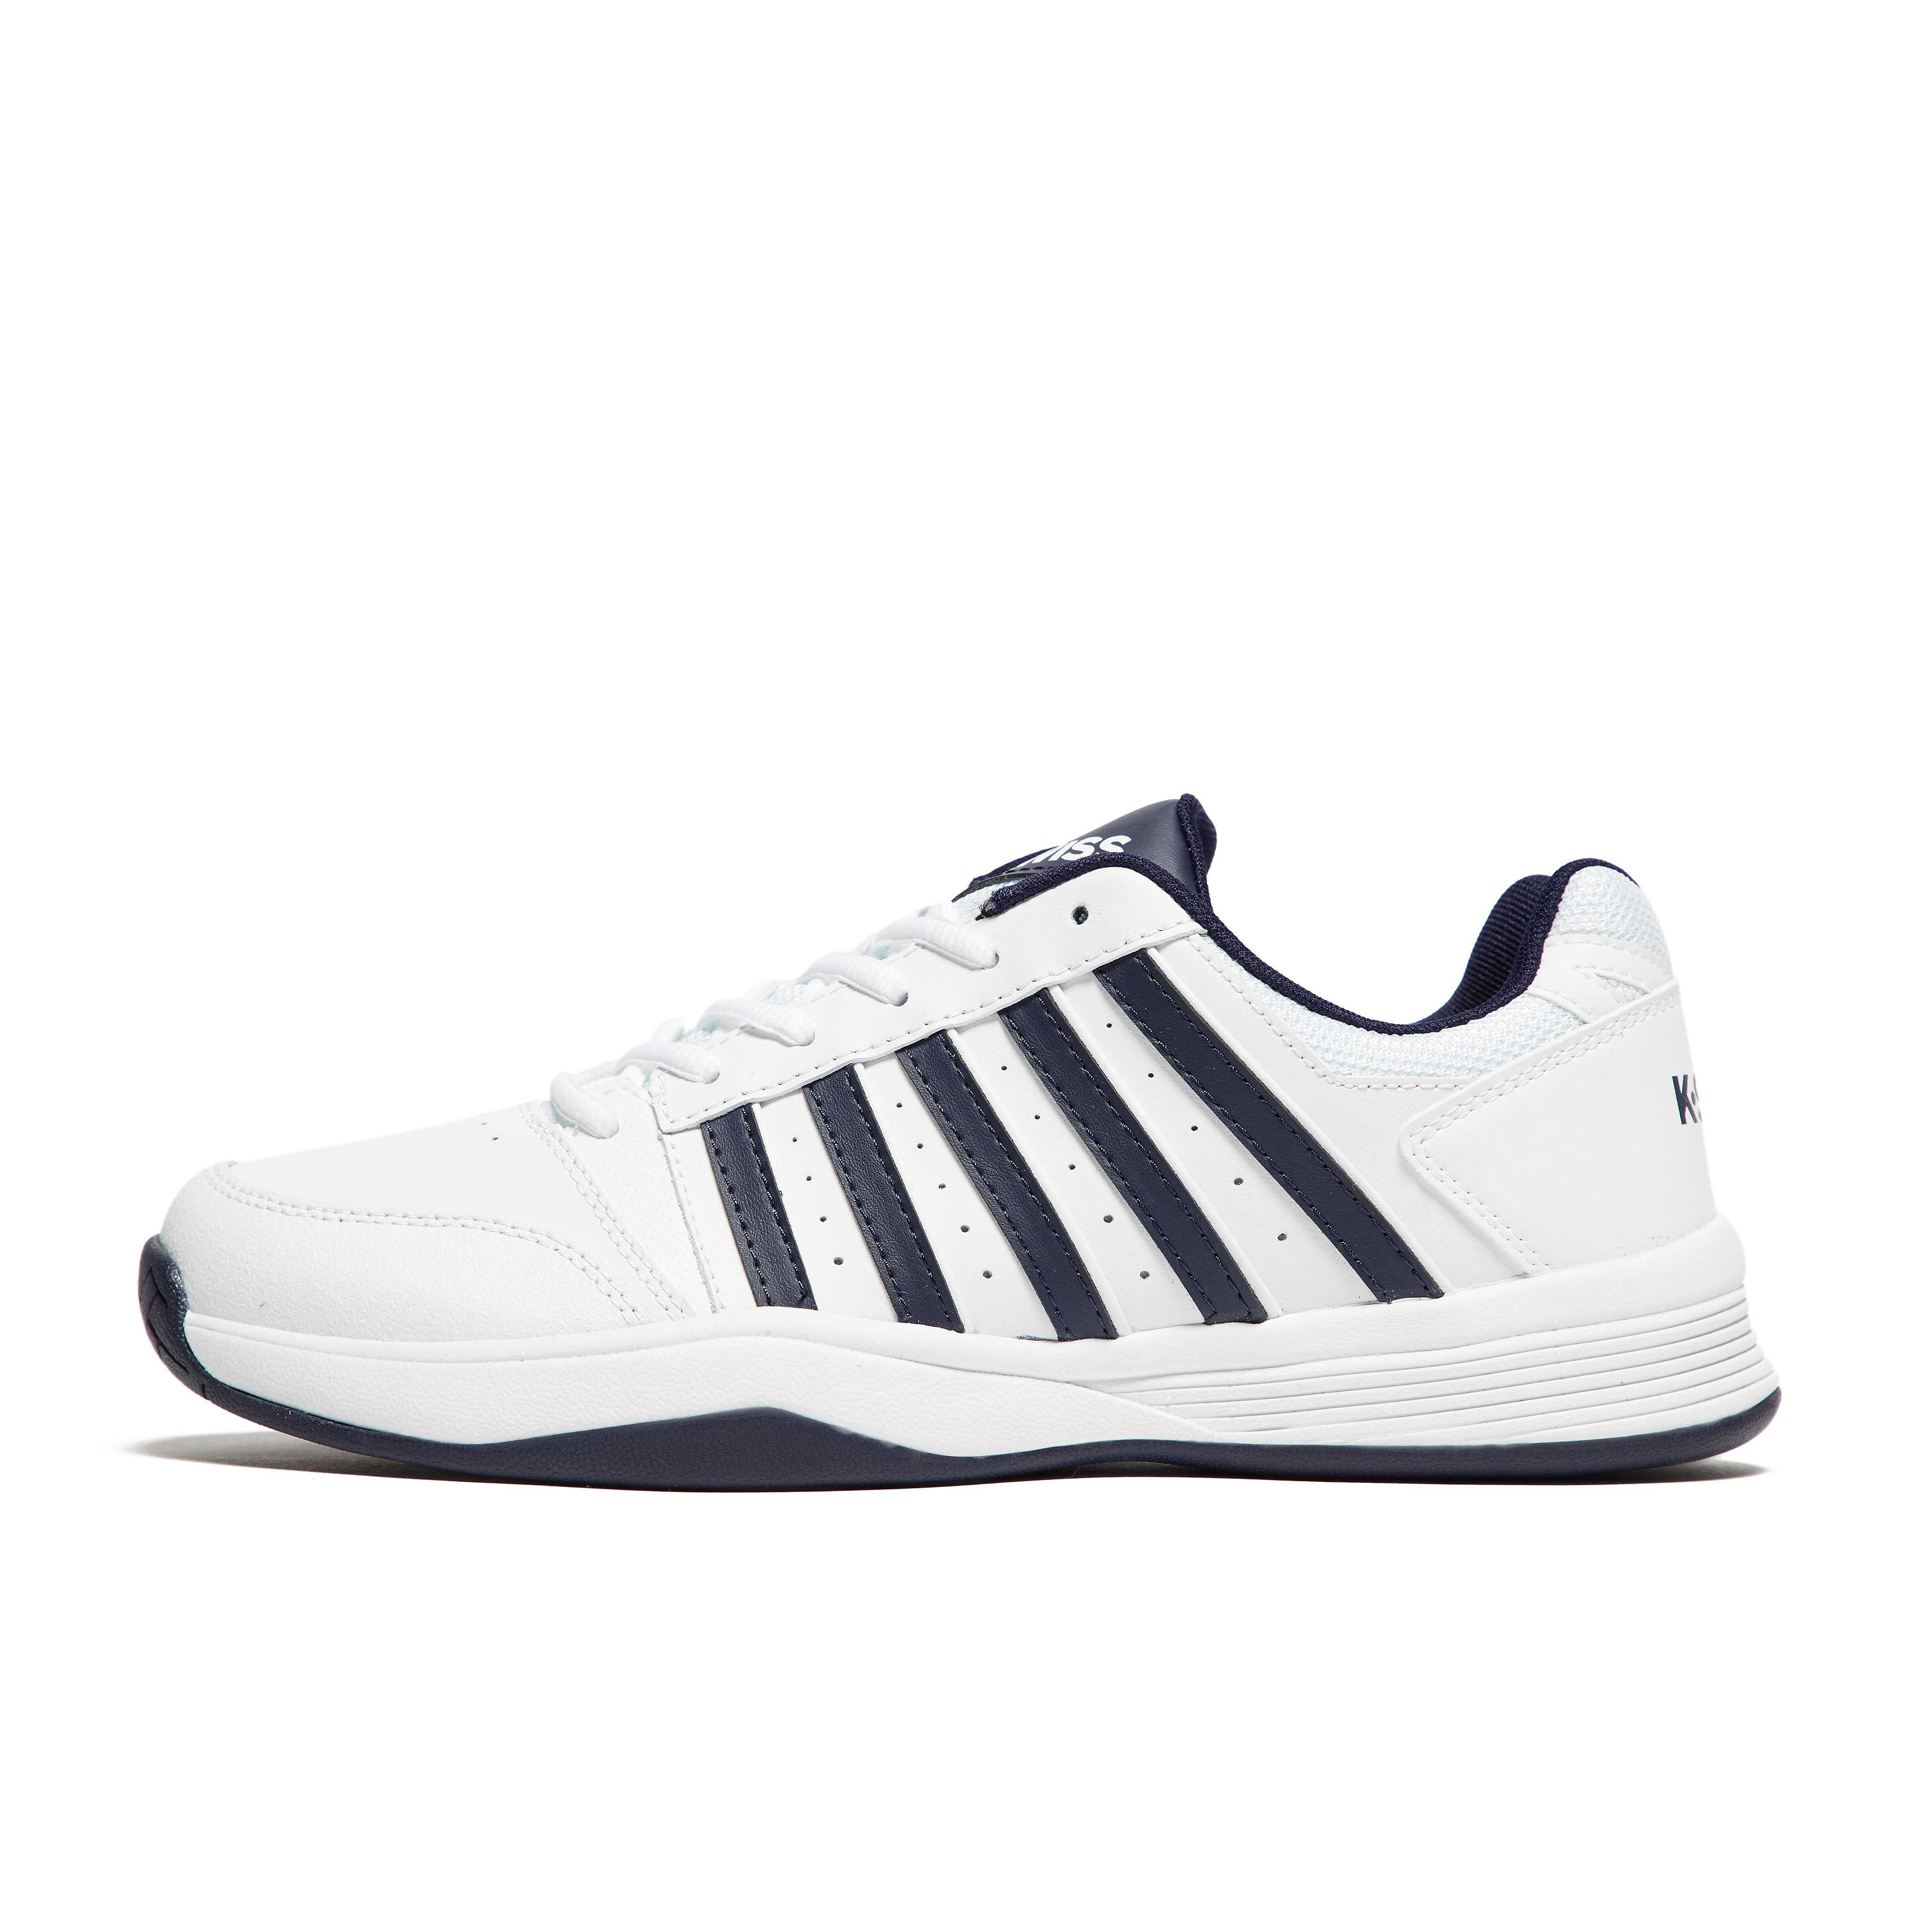 K-Swiss Court Smash Men's Tennis Shoes